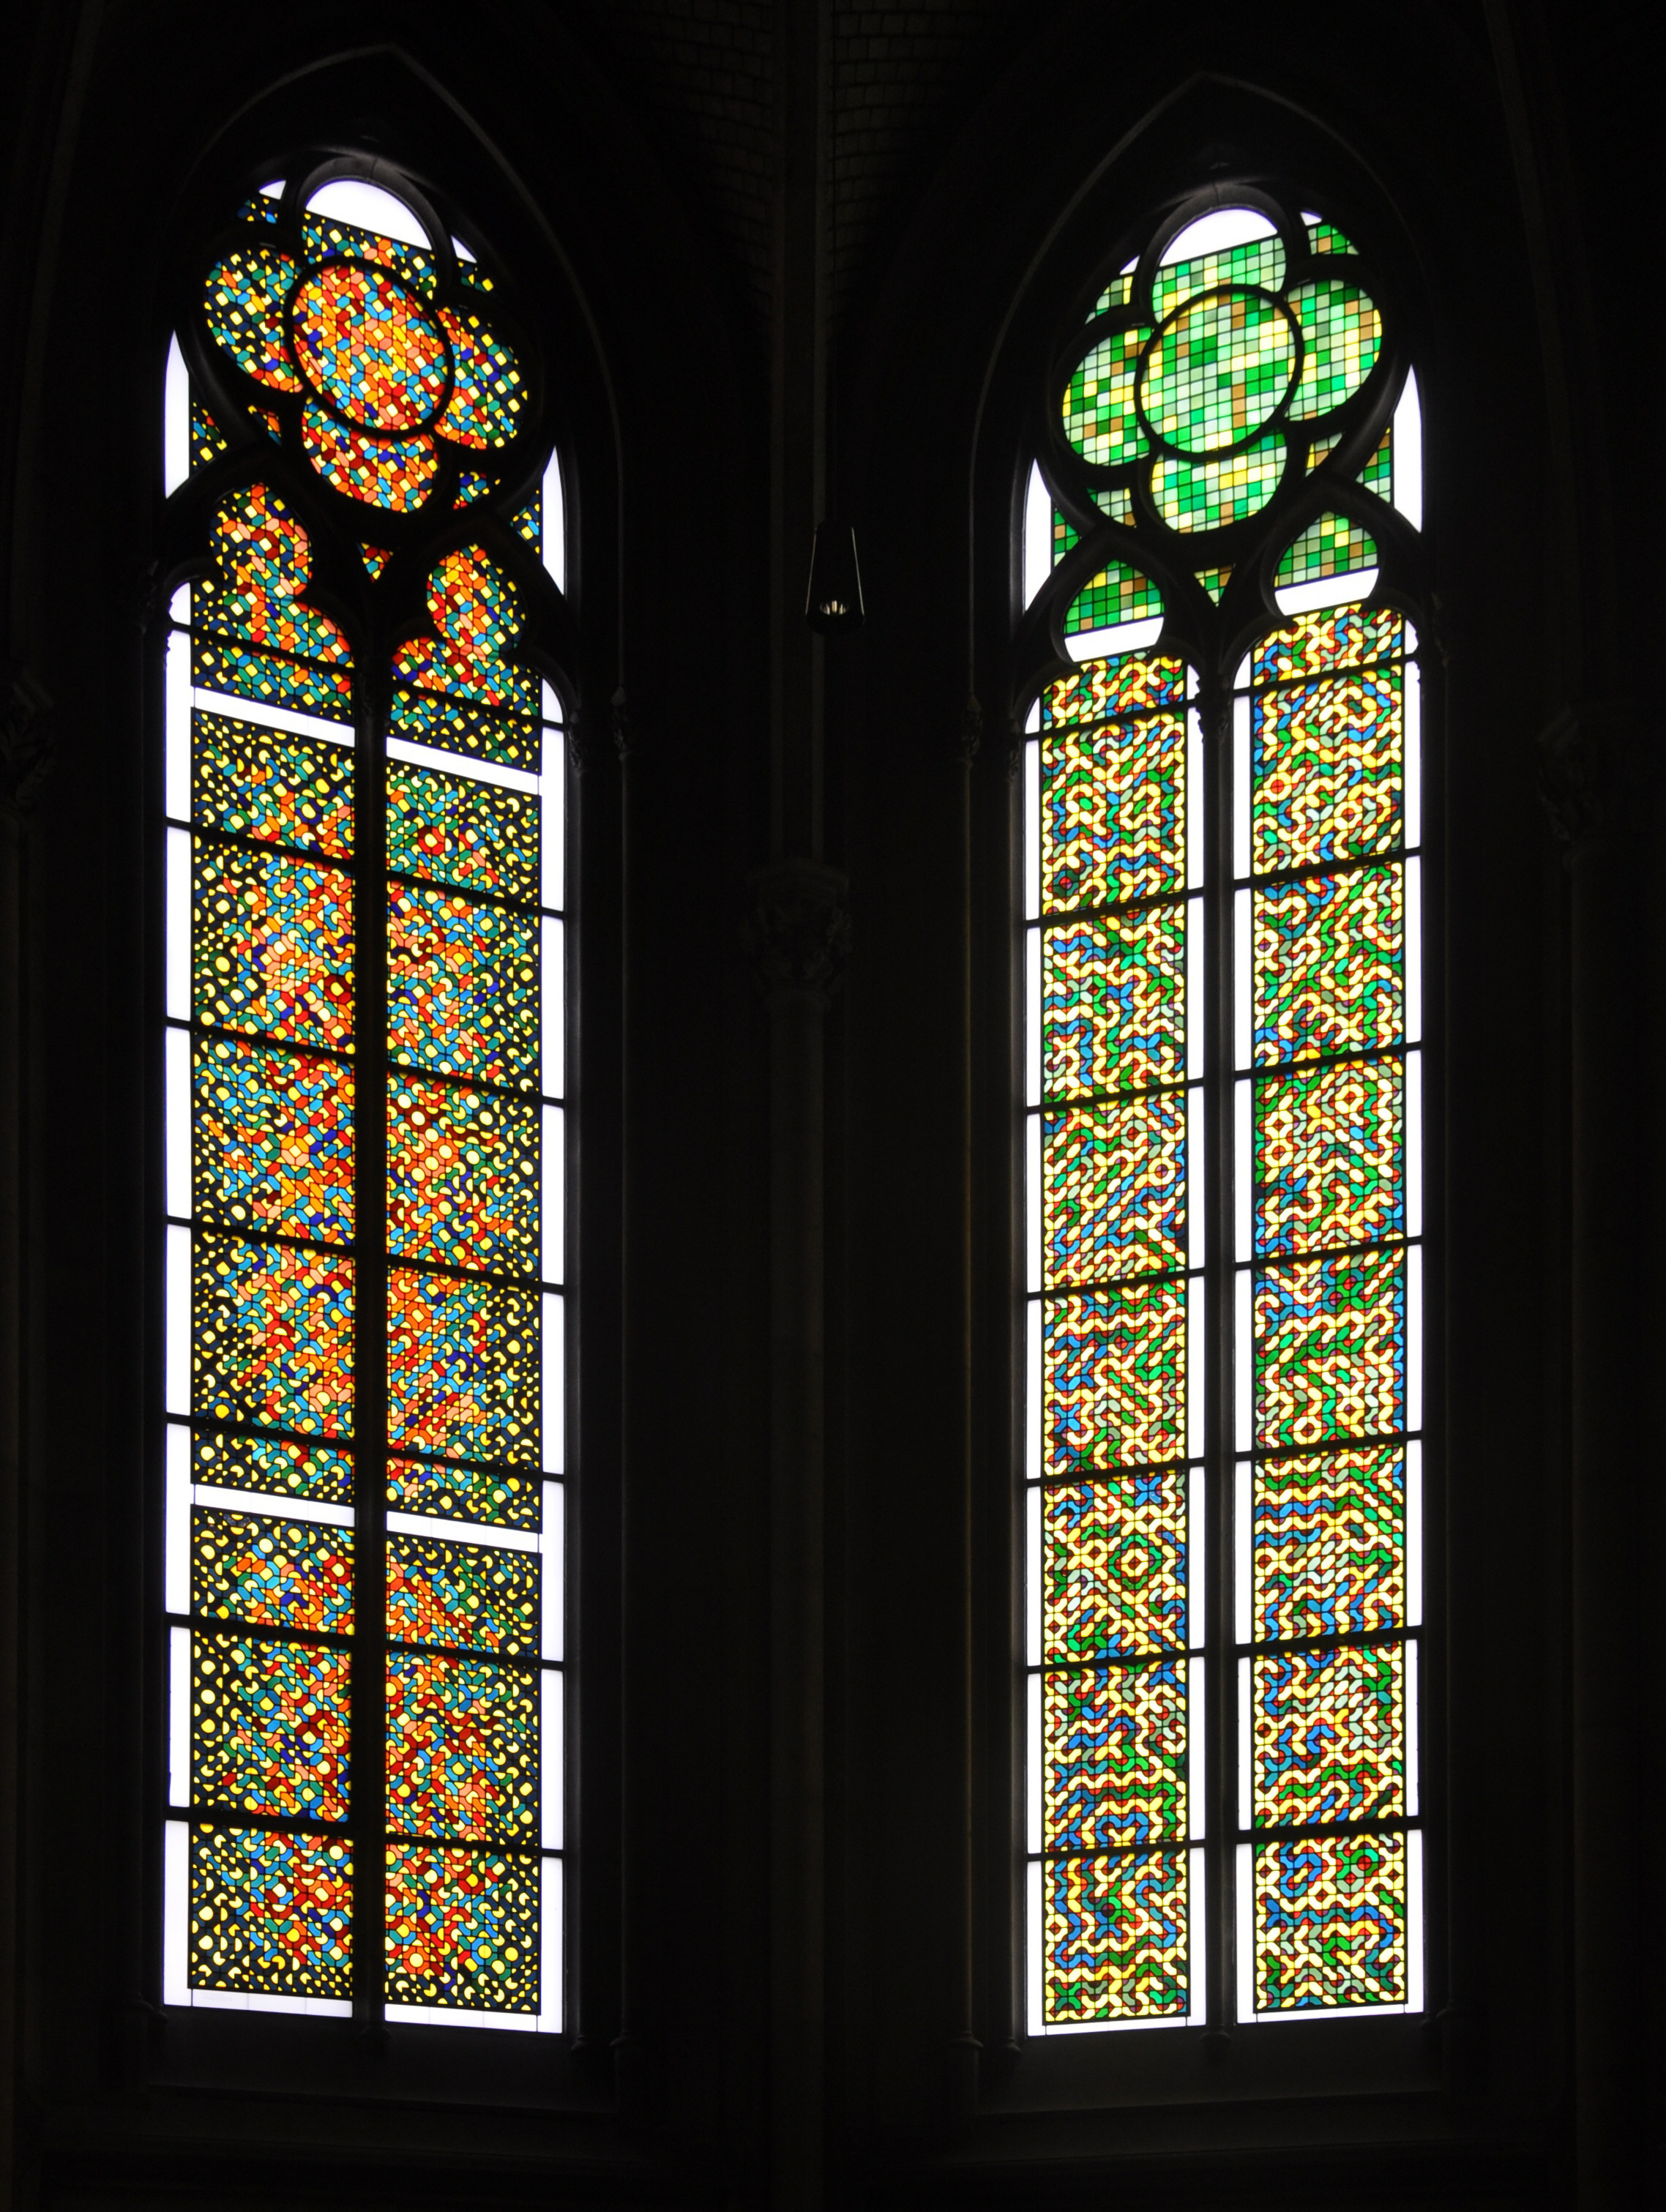 #A9652211 File:Linz Neuer Dom Moderne Fenster 06.jpg Wikimedia Commons pic Moderne Fenster 2276x3022